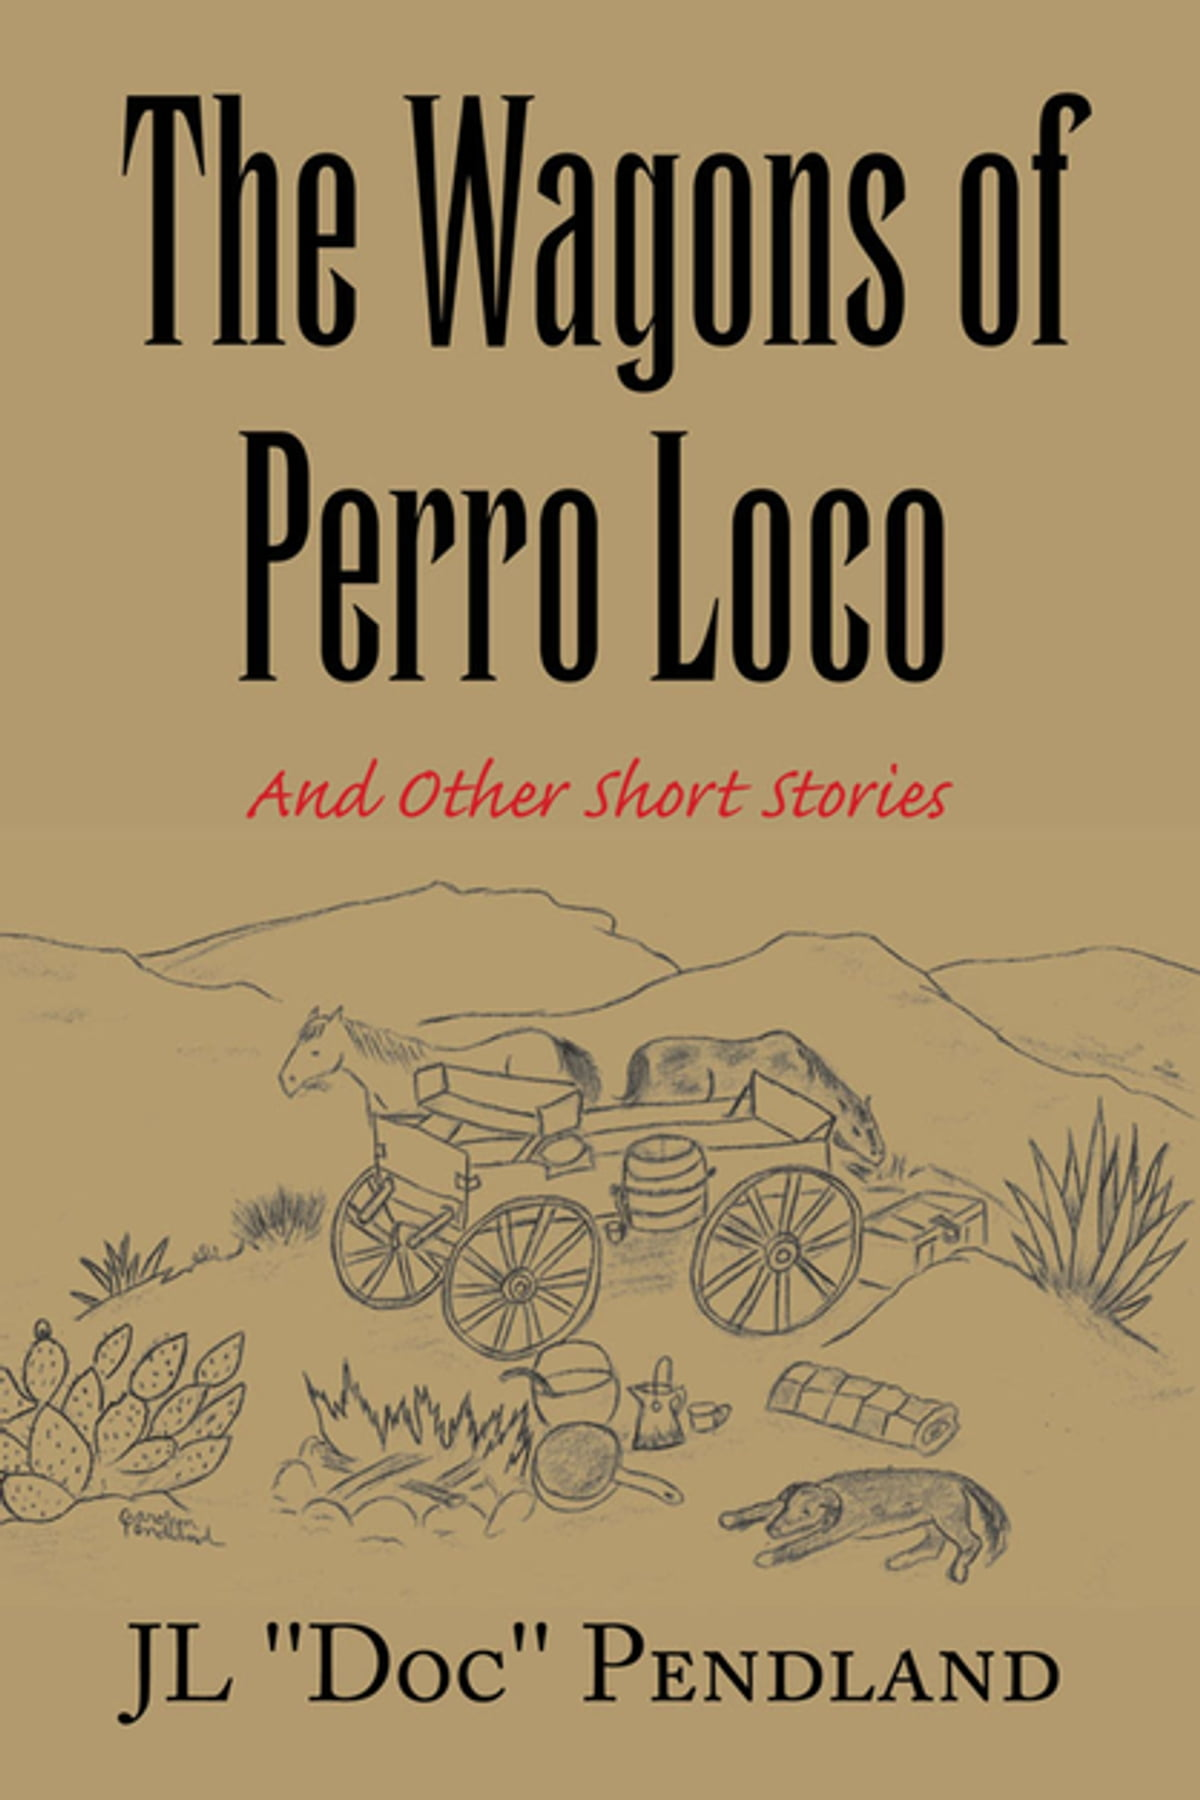 The Wagons of Perro Loco ebook by JL Pendland - Rakuten Kobo